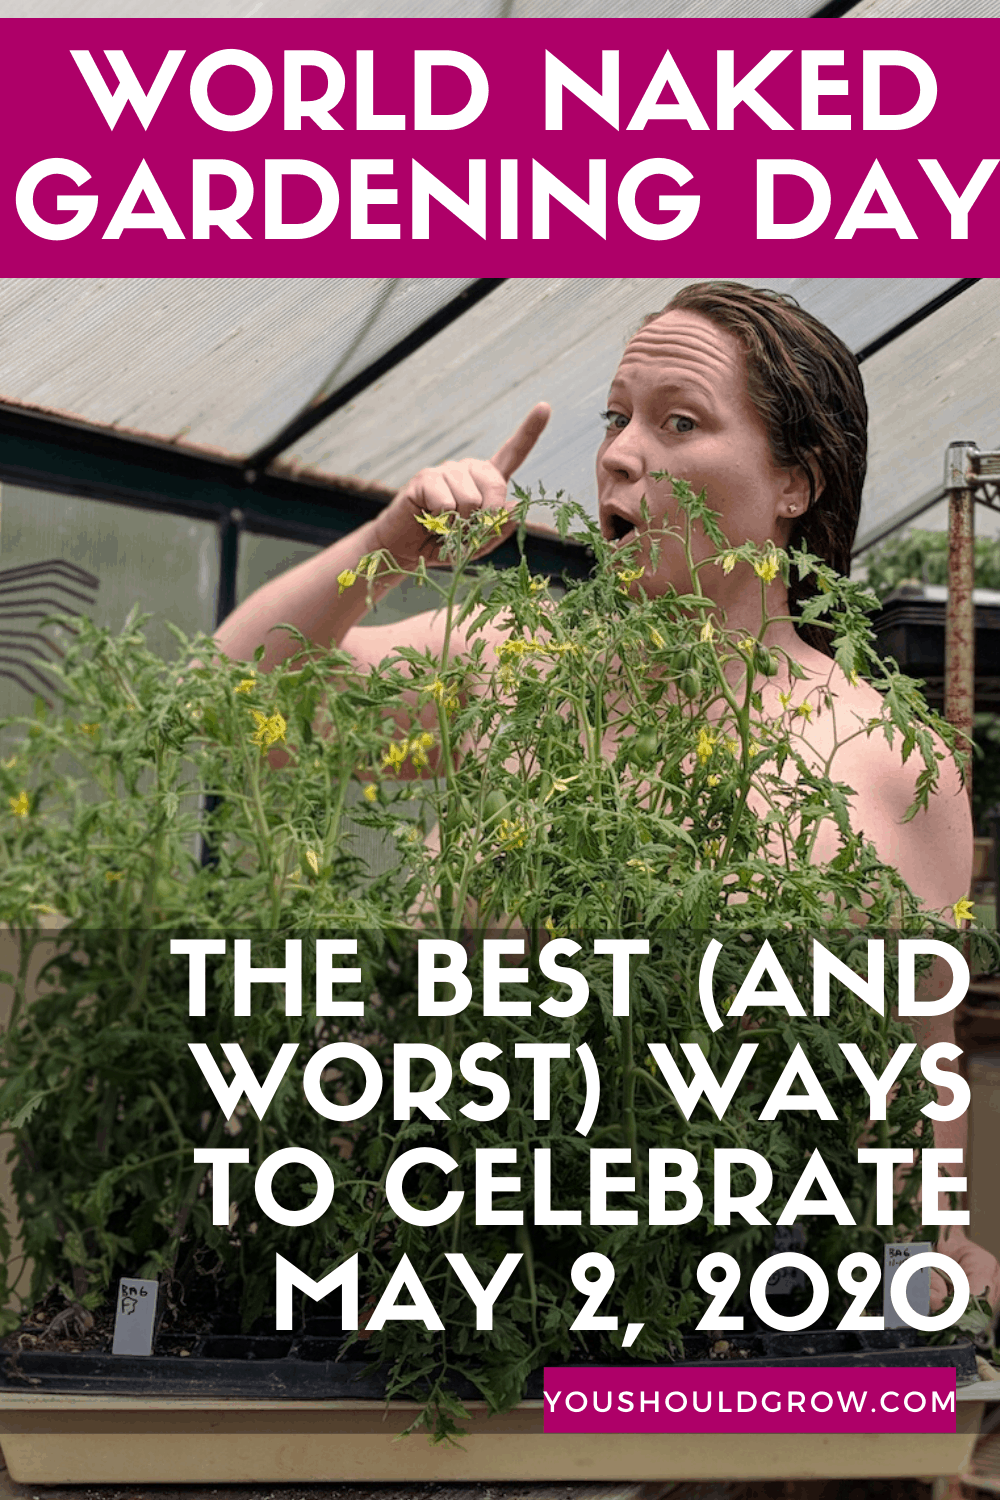 Gardening ideas: how about naked gardening? Have you thought about participating in world naked gardening day? Here are the best (AND WORST) ways people have celebrated #WNGD.